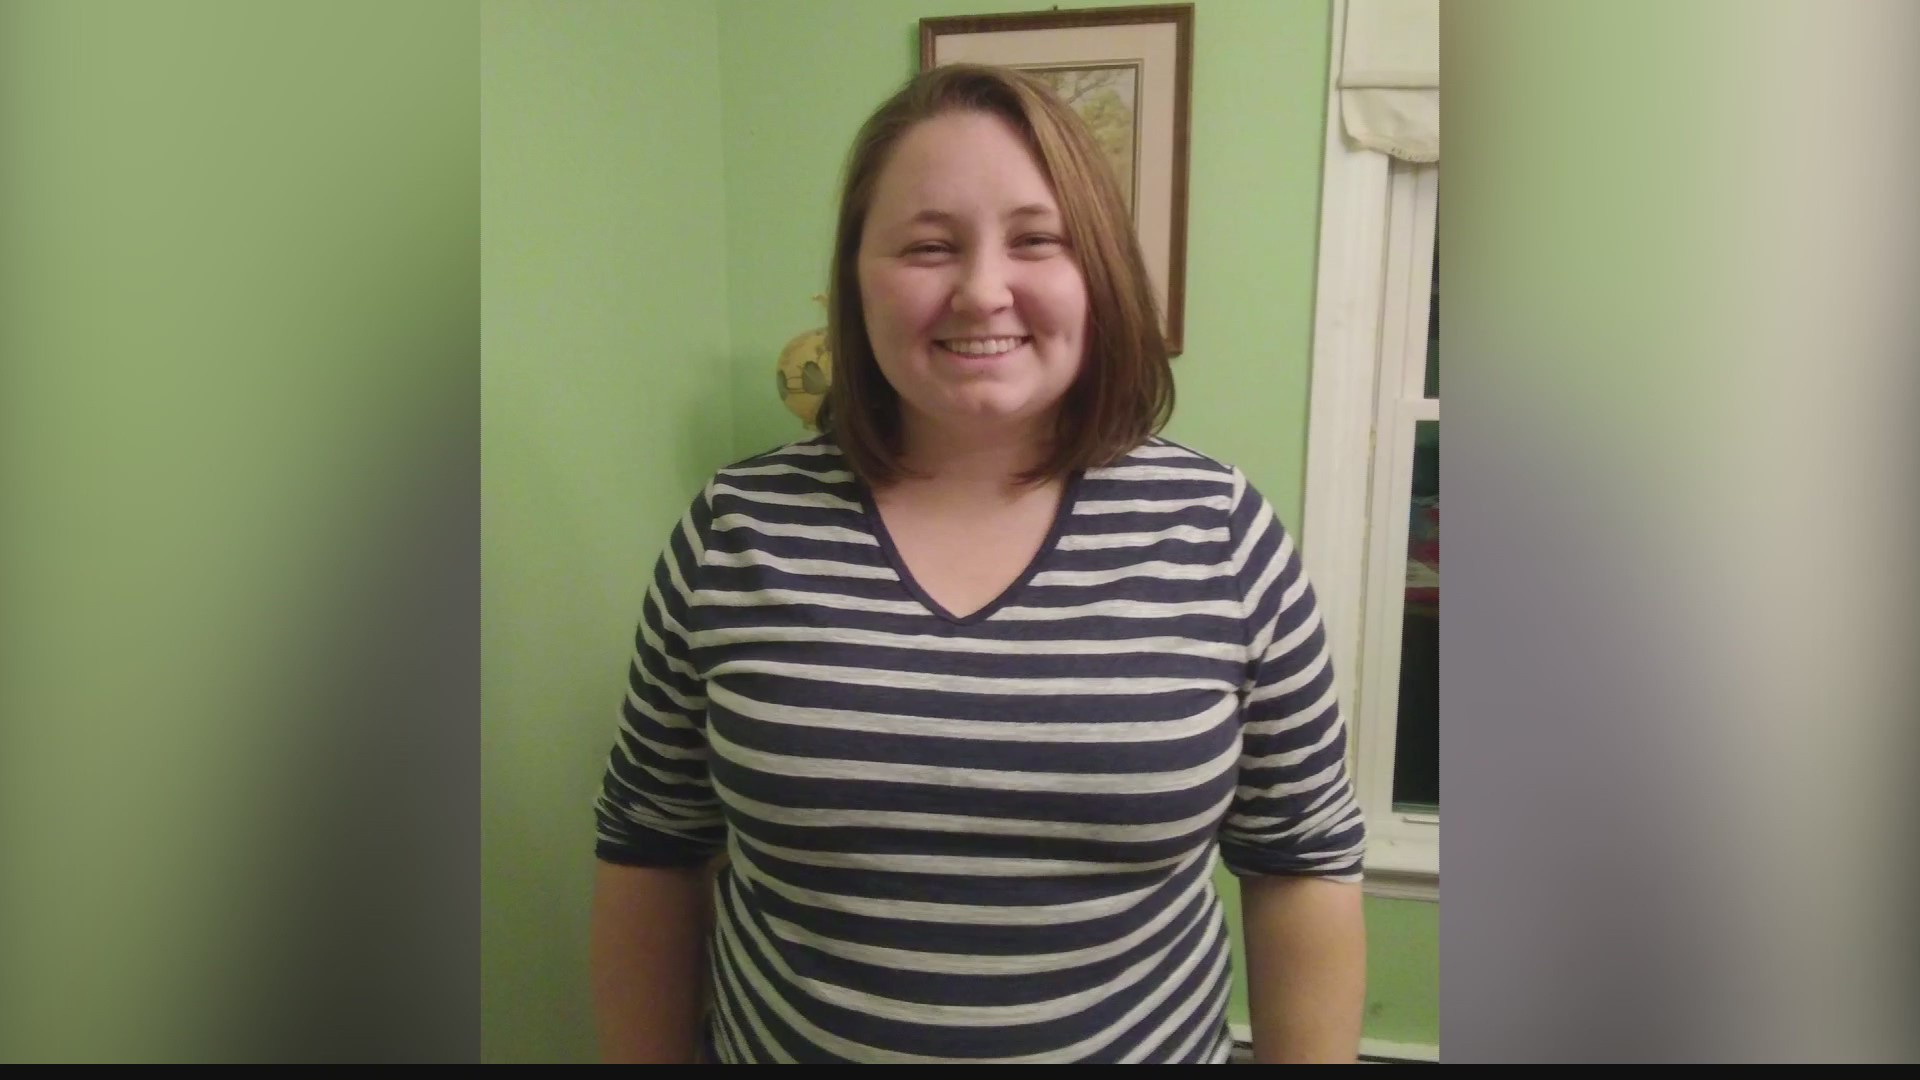 Huntingdon Co. native killed while visiting Tennessee... new details about case